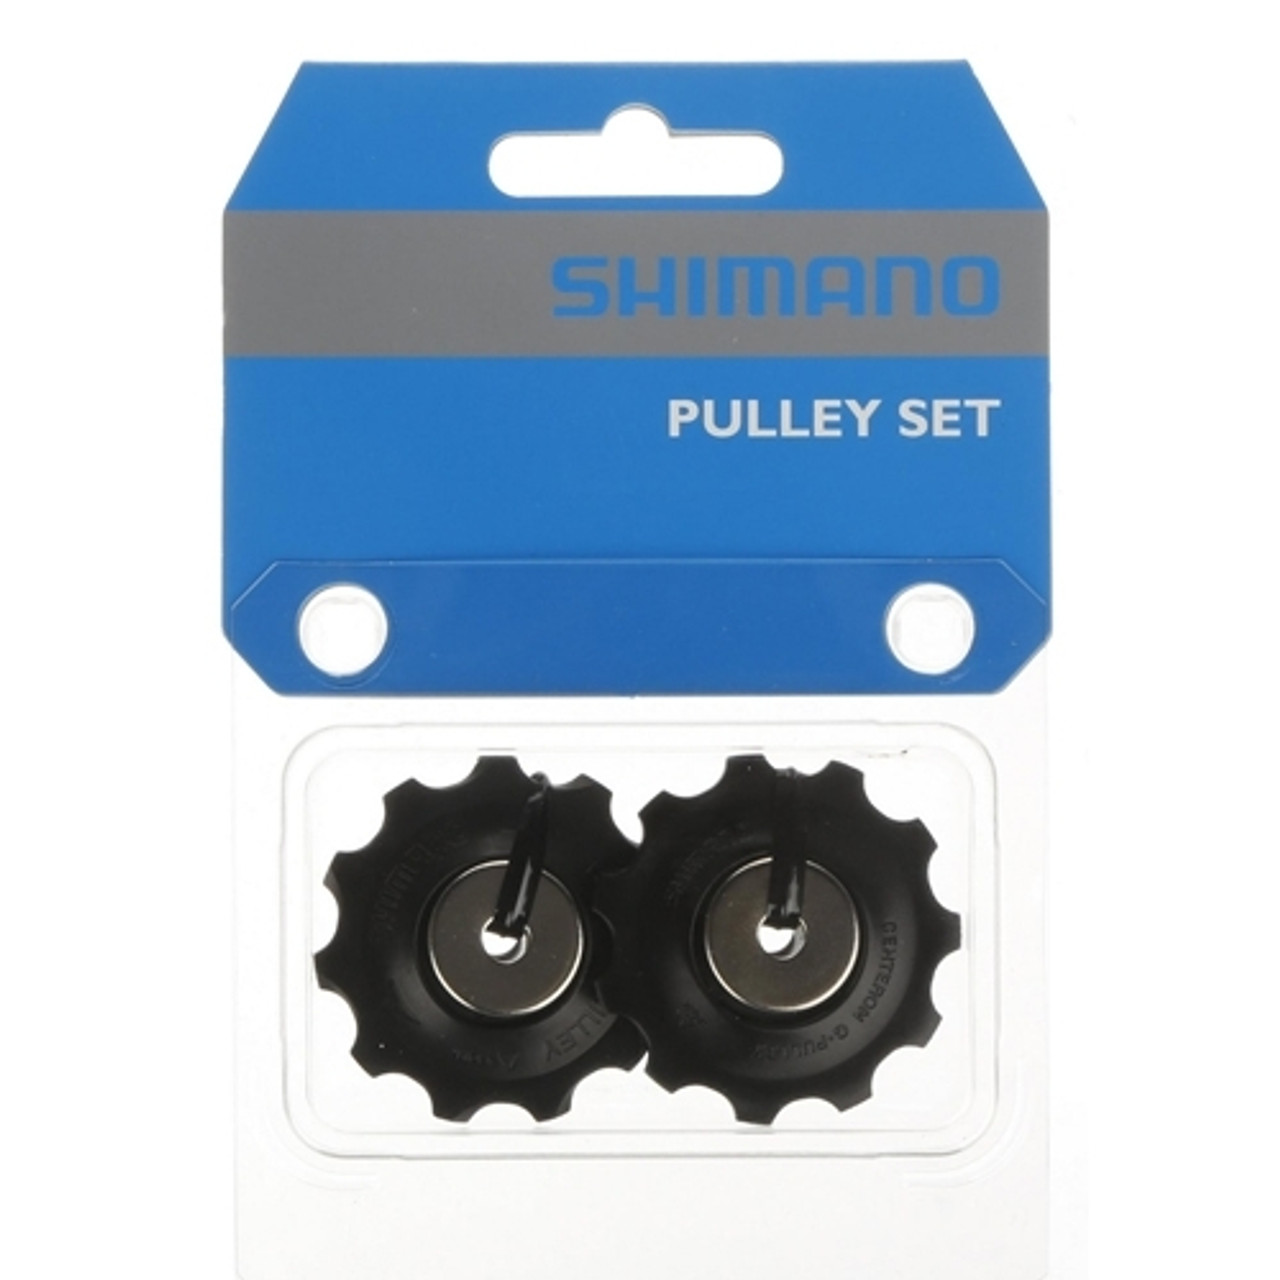 Shimano 105/Deore RD-5700 10Spd Pulley Set |  5701 5700 5600 4601 4600 4500 3500 3400 2400 R350 R350-10 M662 M592 M591 M531